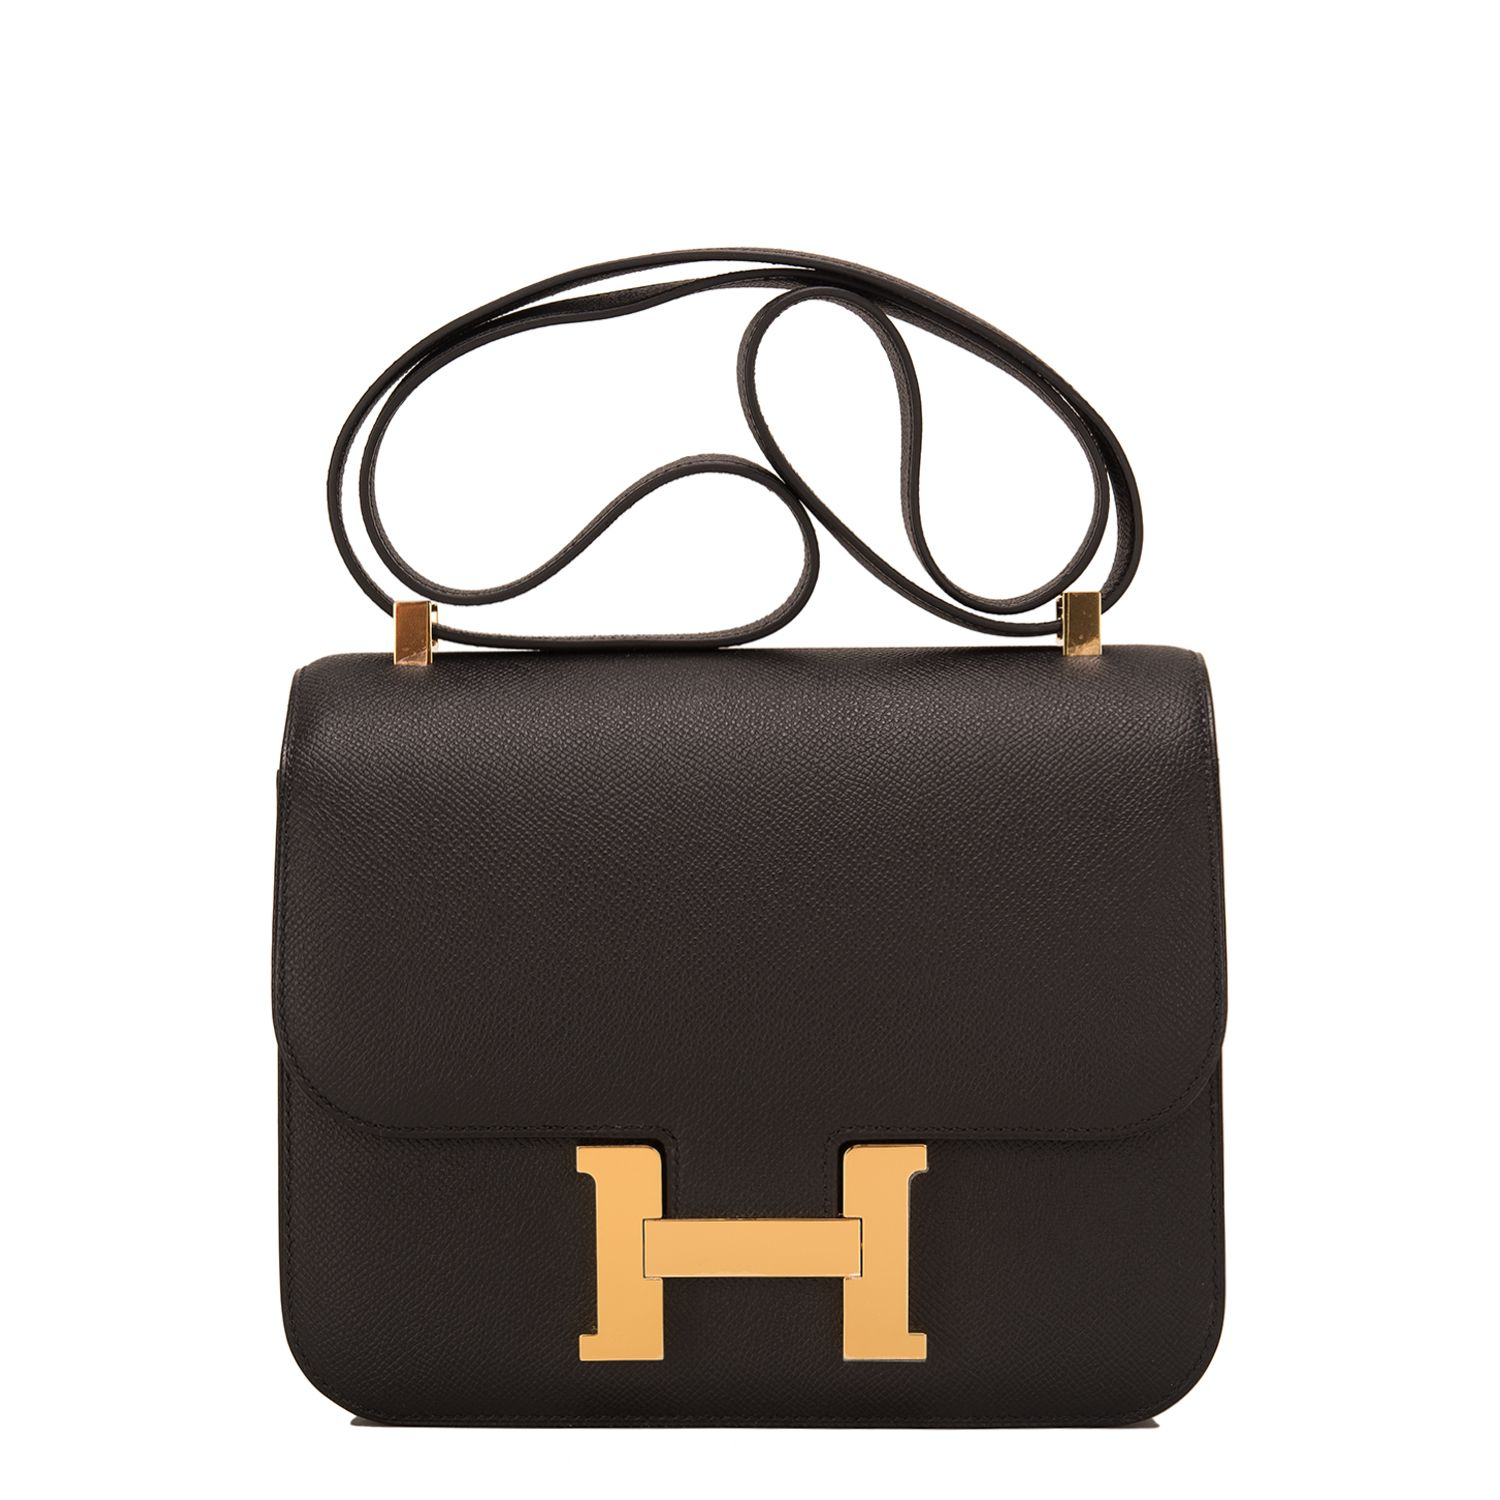 a95f8face9e Hermes Constance #Bag Black Epsom Gold Hardware | FASHION & STYLE ...